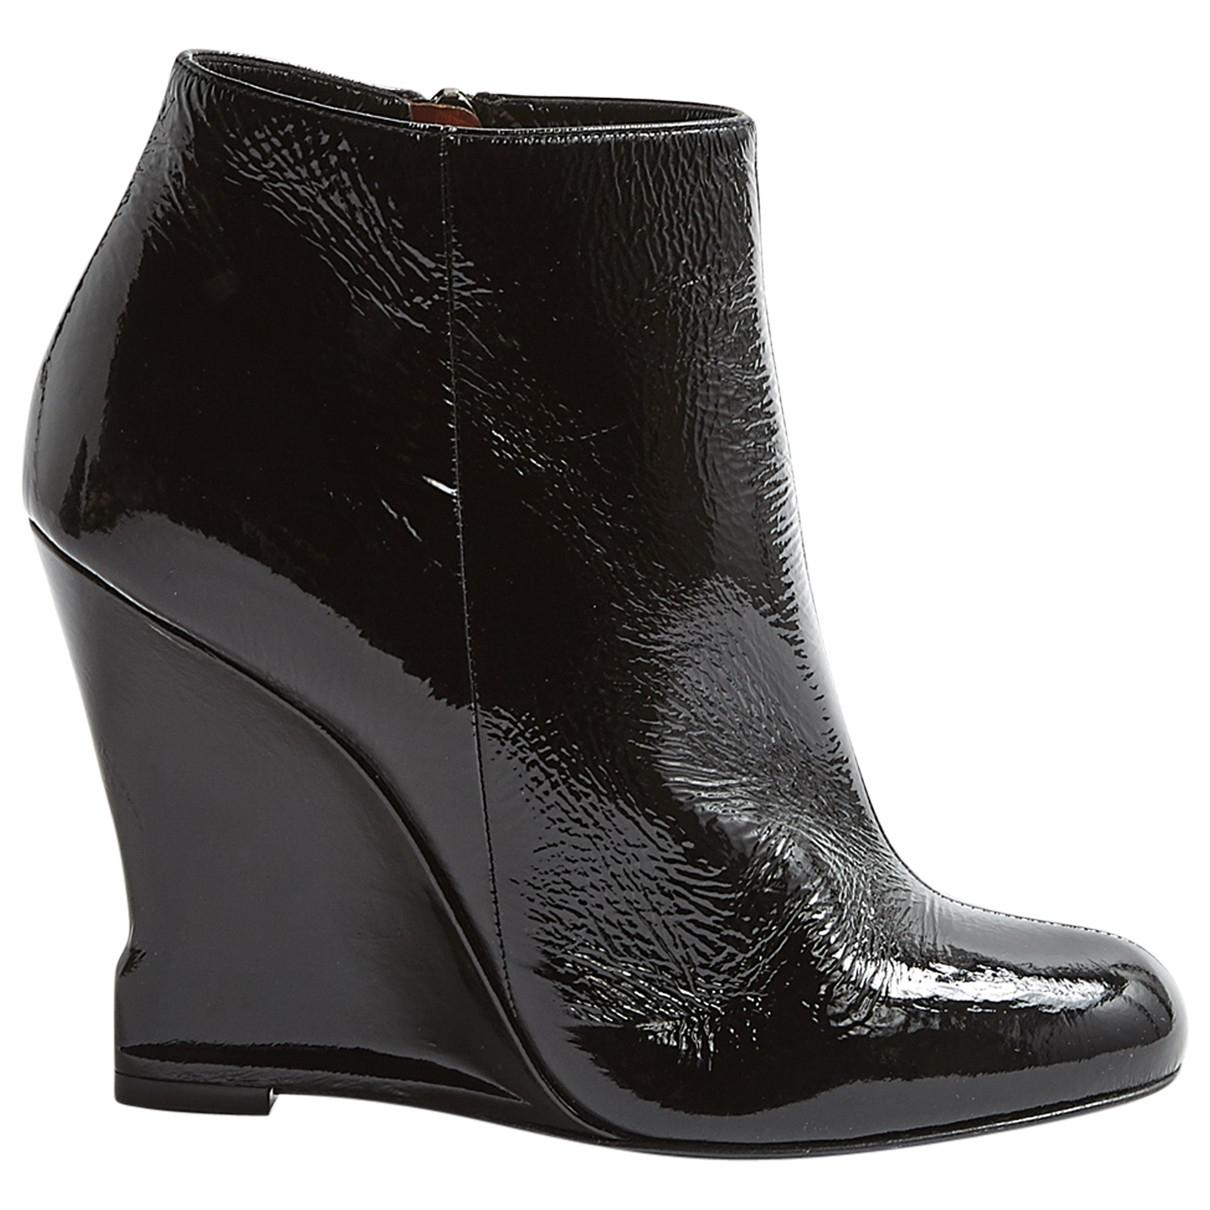 Explore Pre-owned - Black Patent leather Boots Lanvin For Sale Discount Sale Under 70 Dollars awwaS